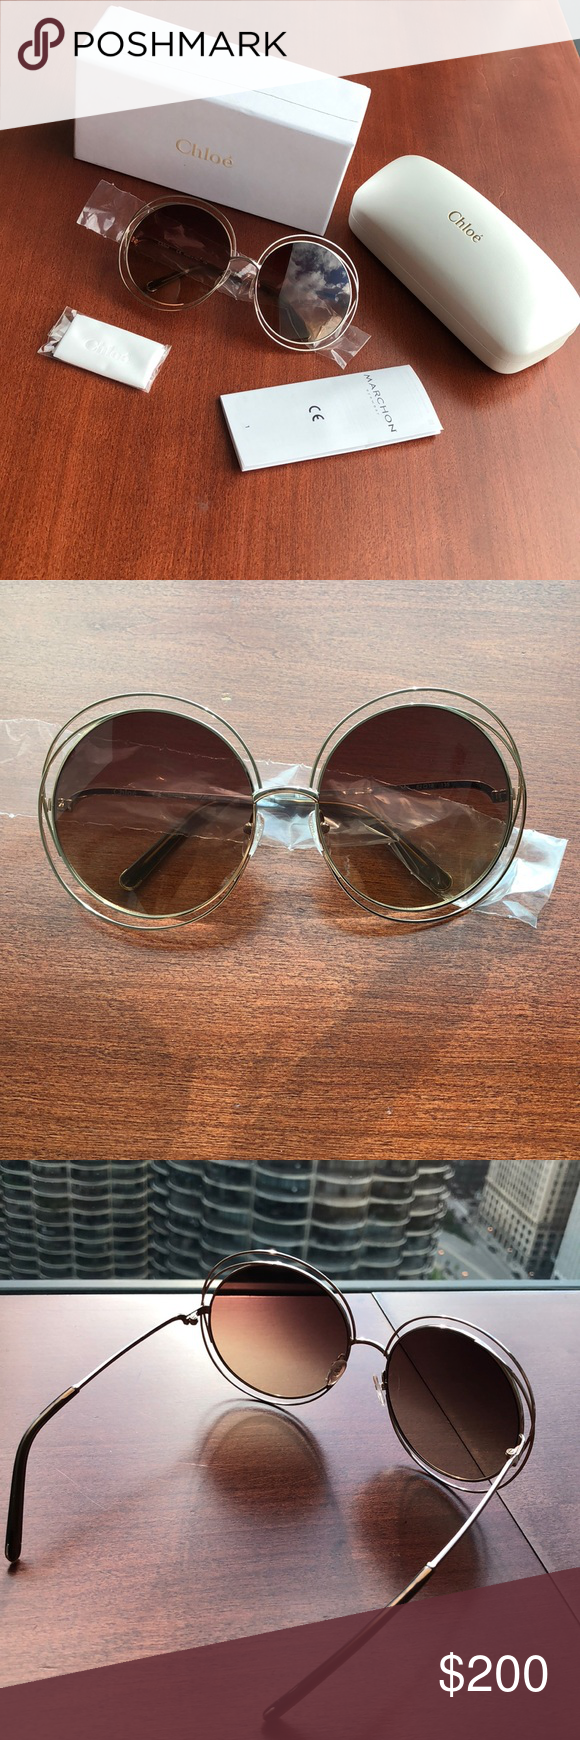 751452bd5a 💎FinalPrice💎Brand New Chloe Rose Gold Sunglasses Brand new and never  used. Style number CE114S Frame Color  (784) Rose Gold   Transparent Brown  Polarized ...